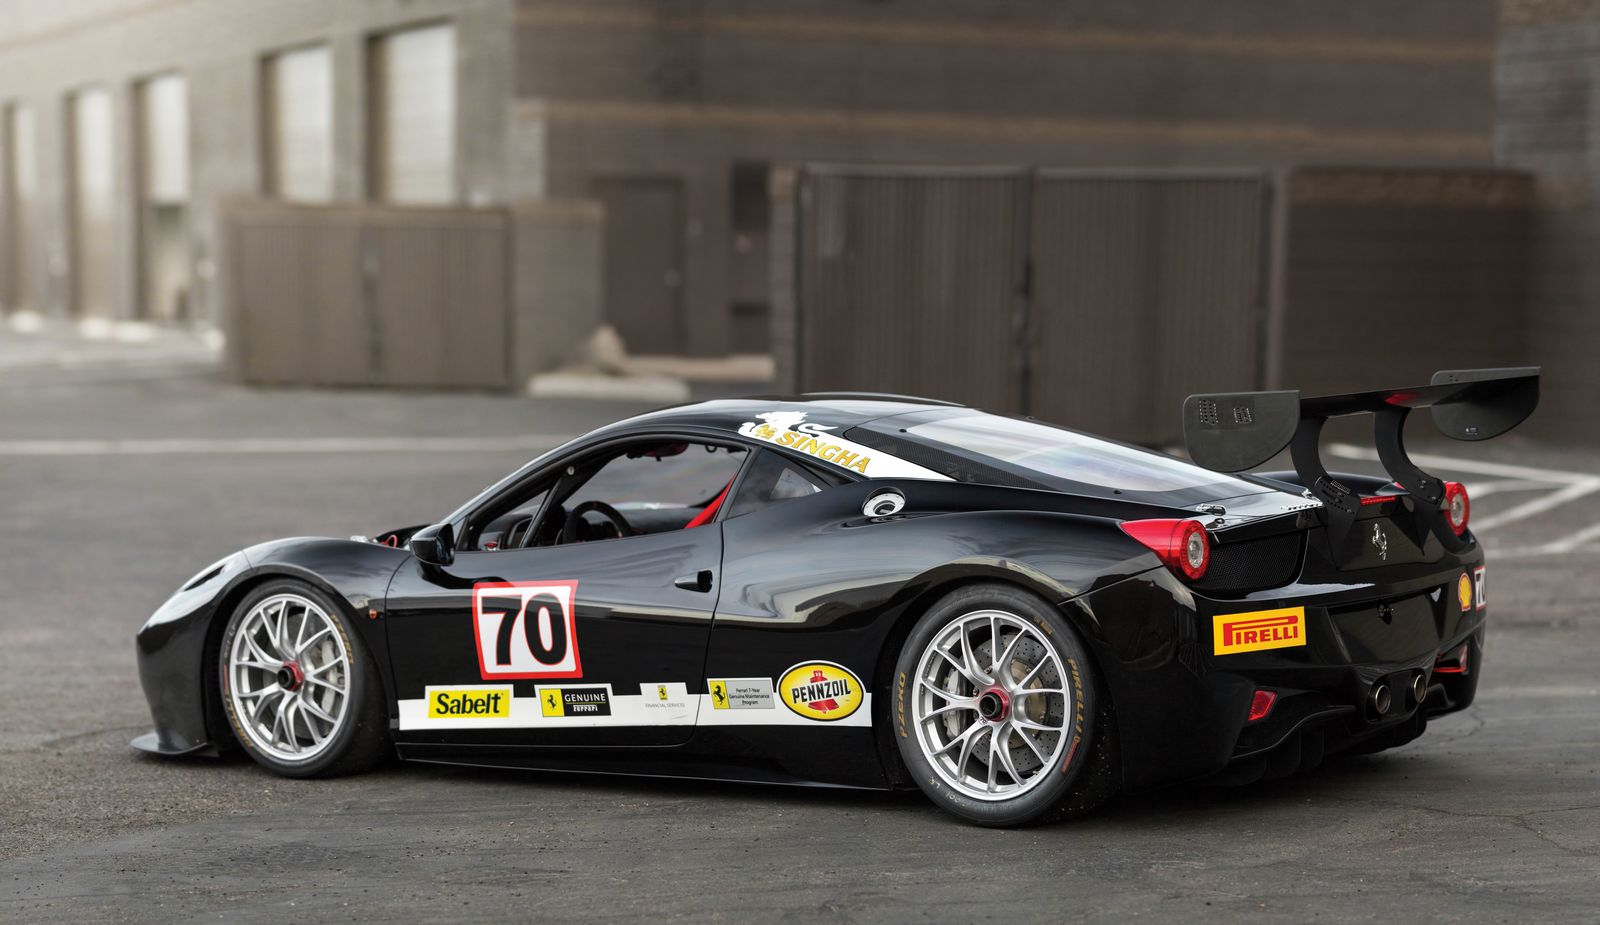 ferrari 458 challenge evoluzione being sold without reserve gtspirit. Black Bedroom Furniture Sets. Home Design Ideas